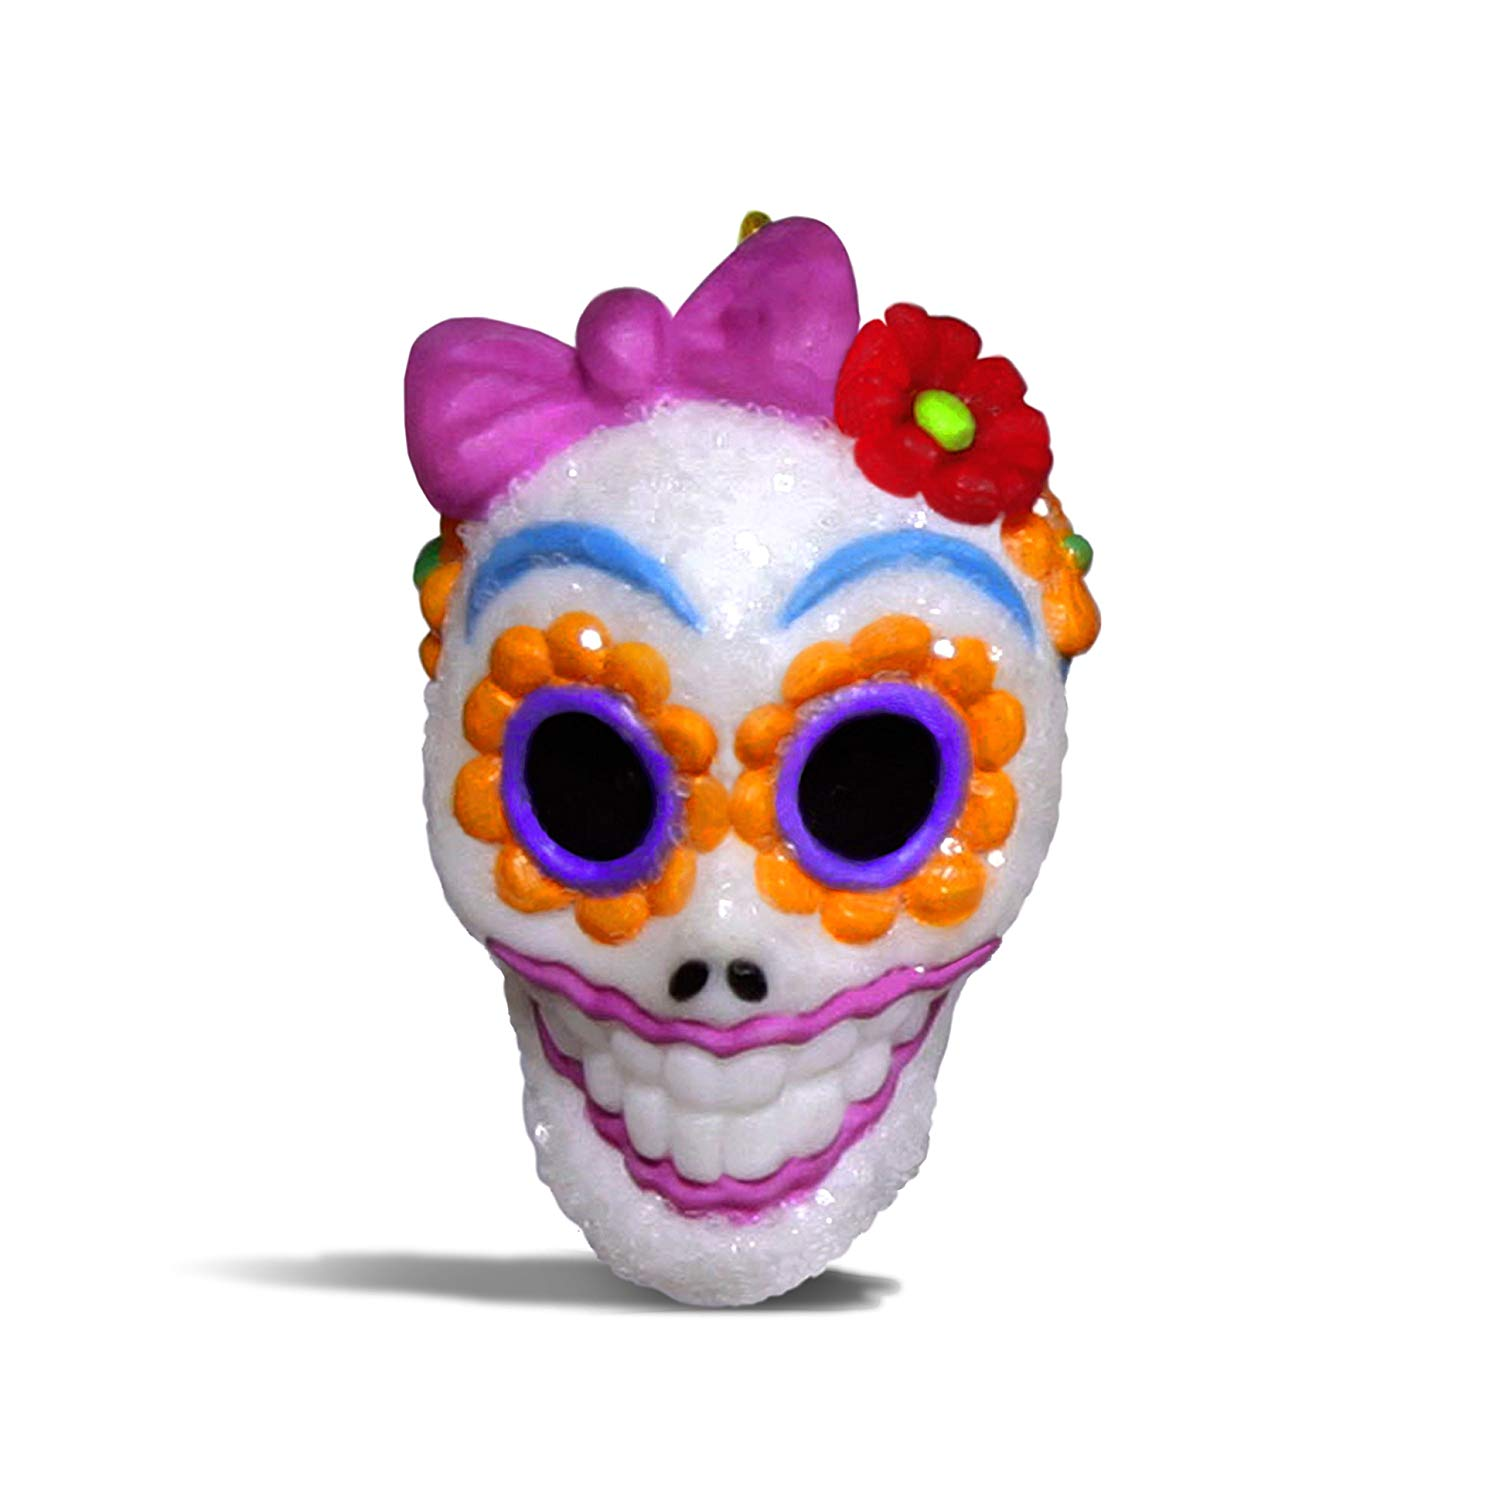 Hallmark Keepsake Halloween Decor Mini Ornament 2018 Year Dated, Sugar Skull Gal Miniature, 1""